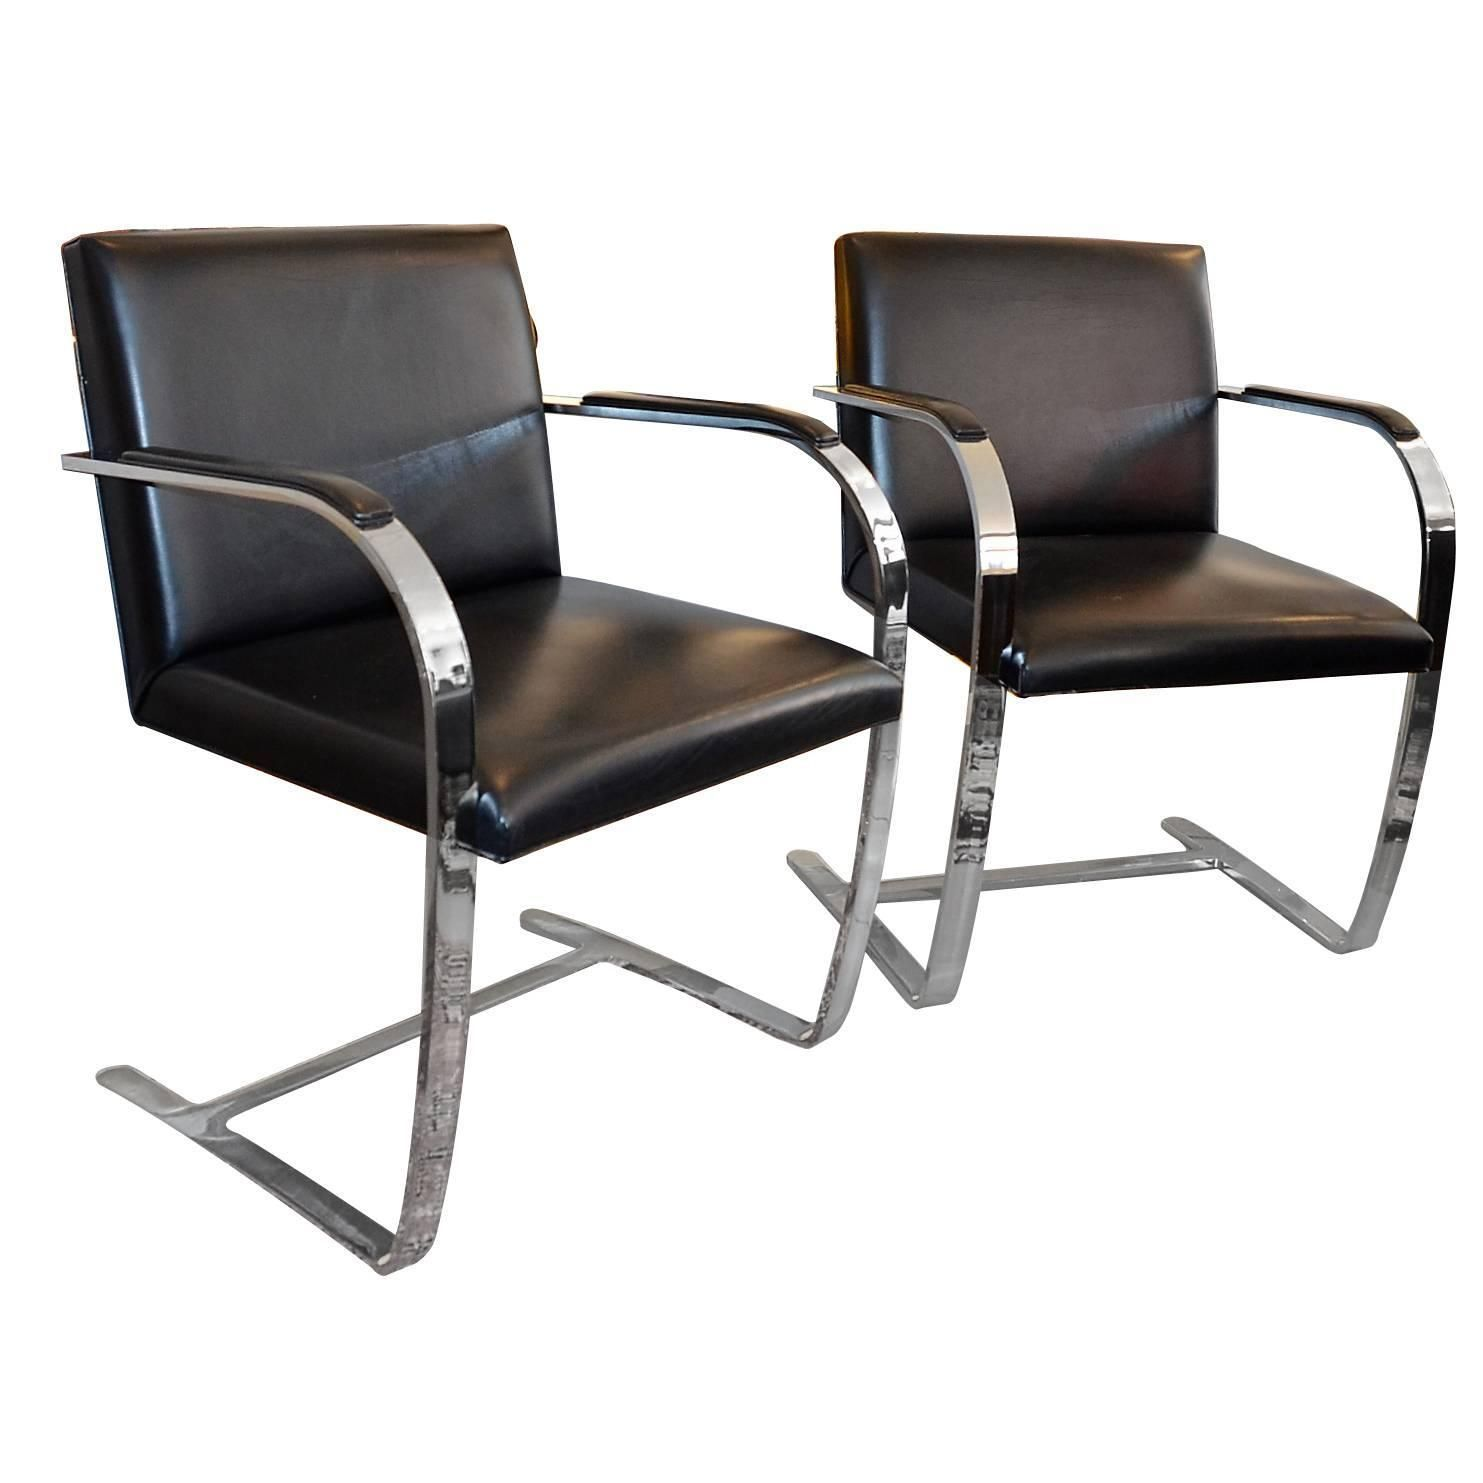 Set of Two Armchairs Brno by Ludwig Mies van der Rohe for Knoll International | From a unique collection of antique and modern armchairs at https://www.1stdibs.com/furniture/seating/armchairs/